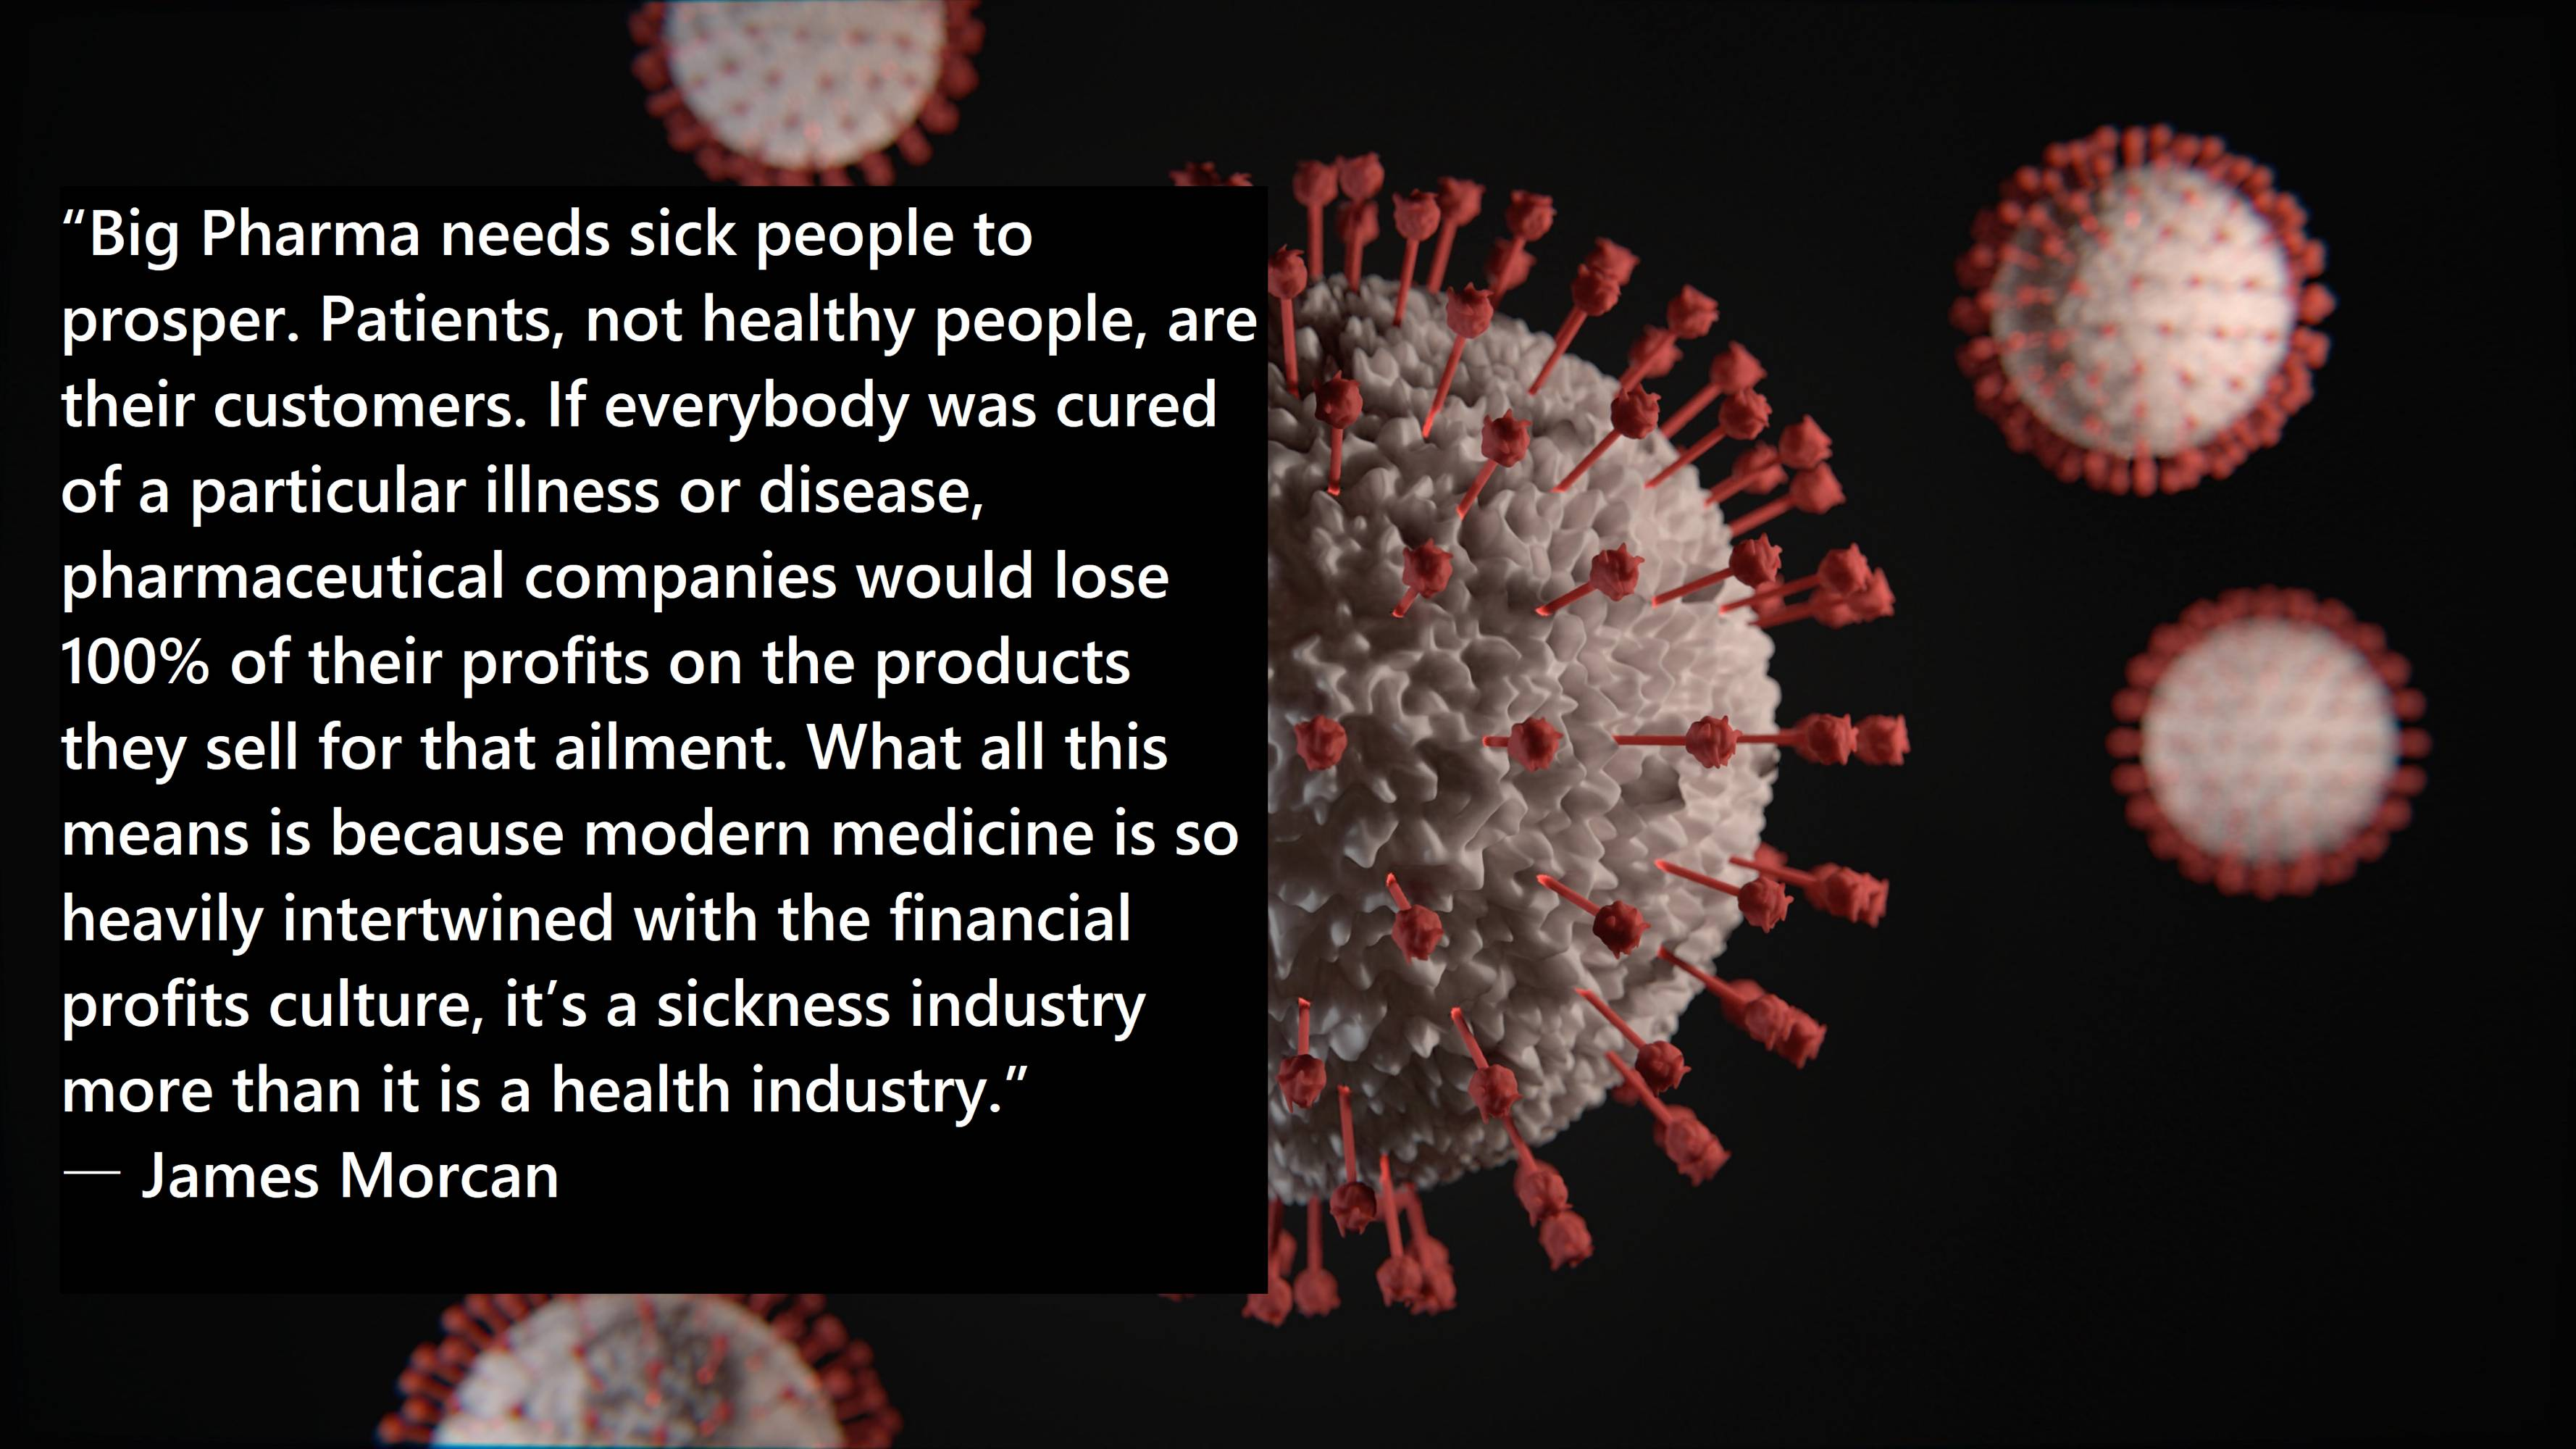 """Big Pharma needs sick people to prosper. Patients, not healthy people, are their customers. If everybody was cured of a particular illness or disease, pharmaceutical companies would lose 100% of their profits on the products they sell for that ailment."" -James Morcan [4000×2250]"